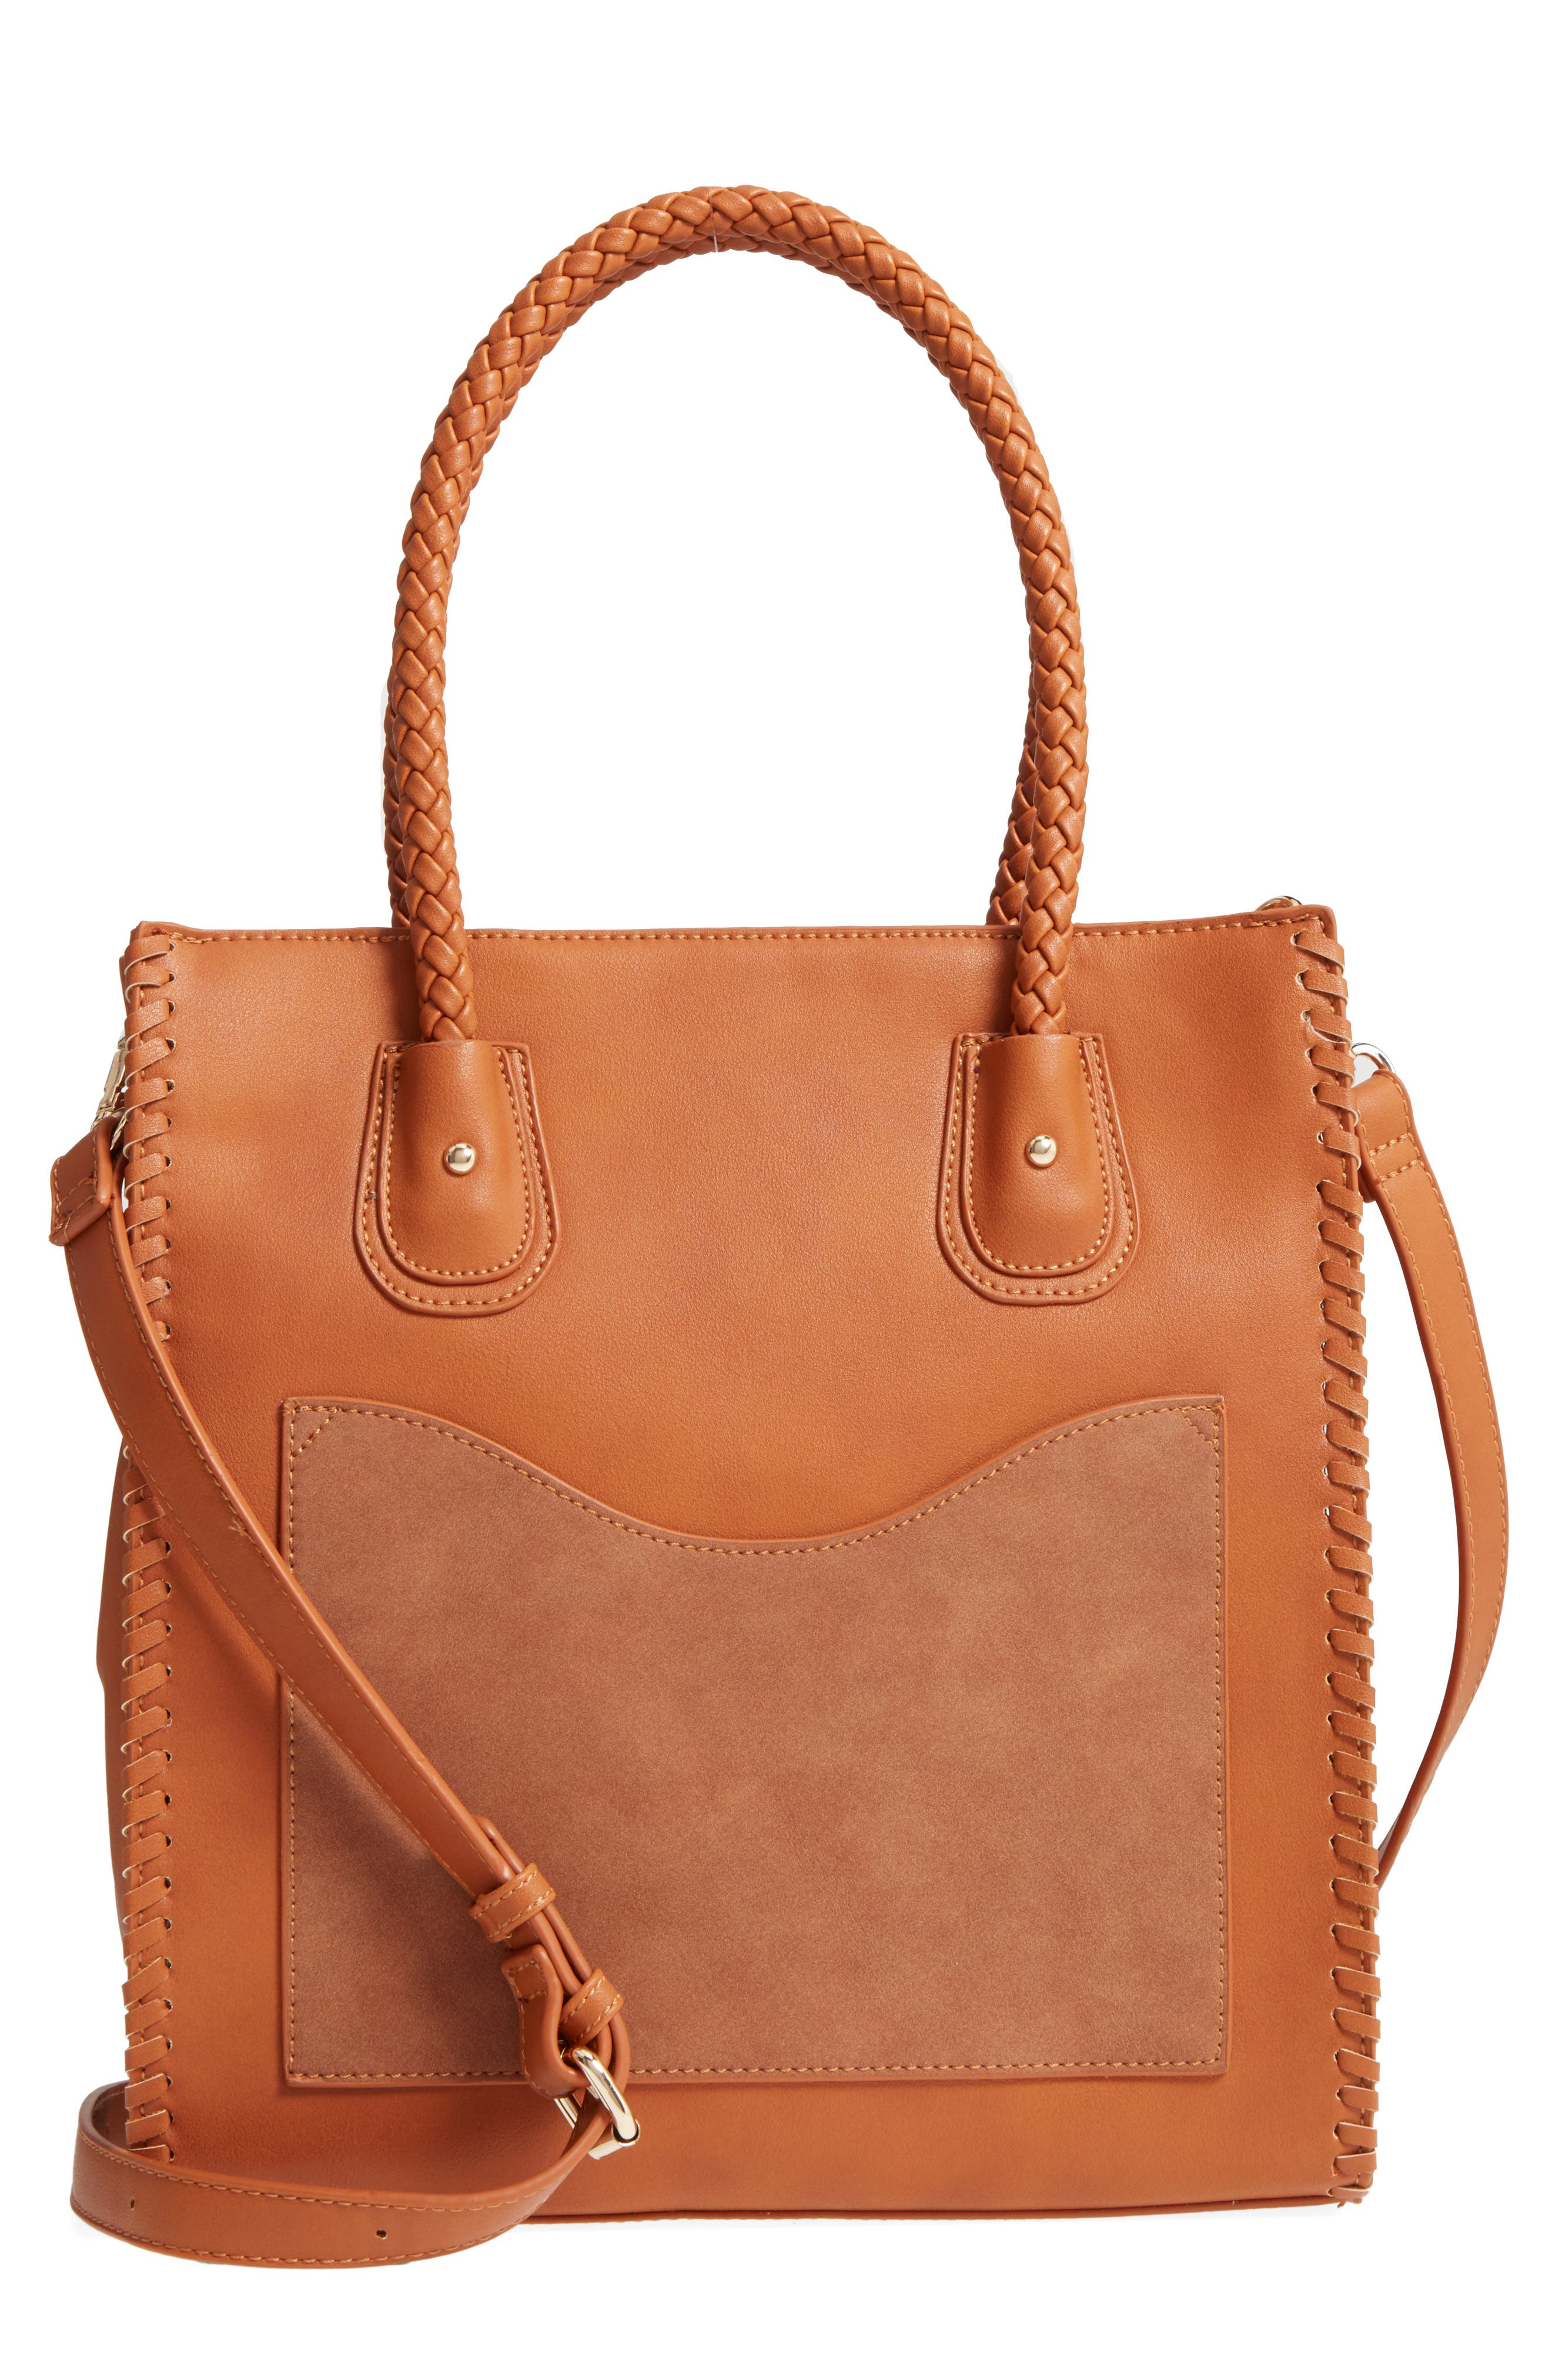 Alternate Image 1 Selected - Emperia Whipstitch Faux Leather Tote